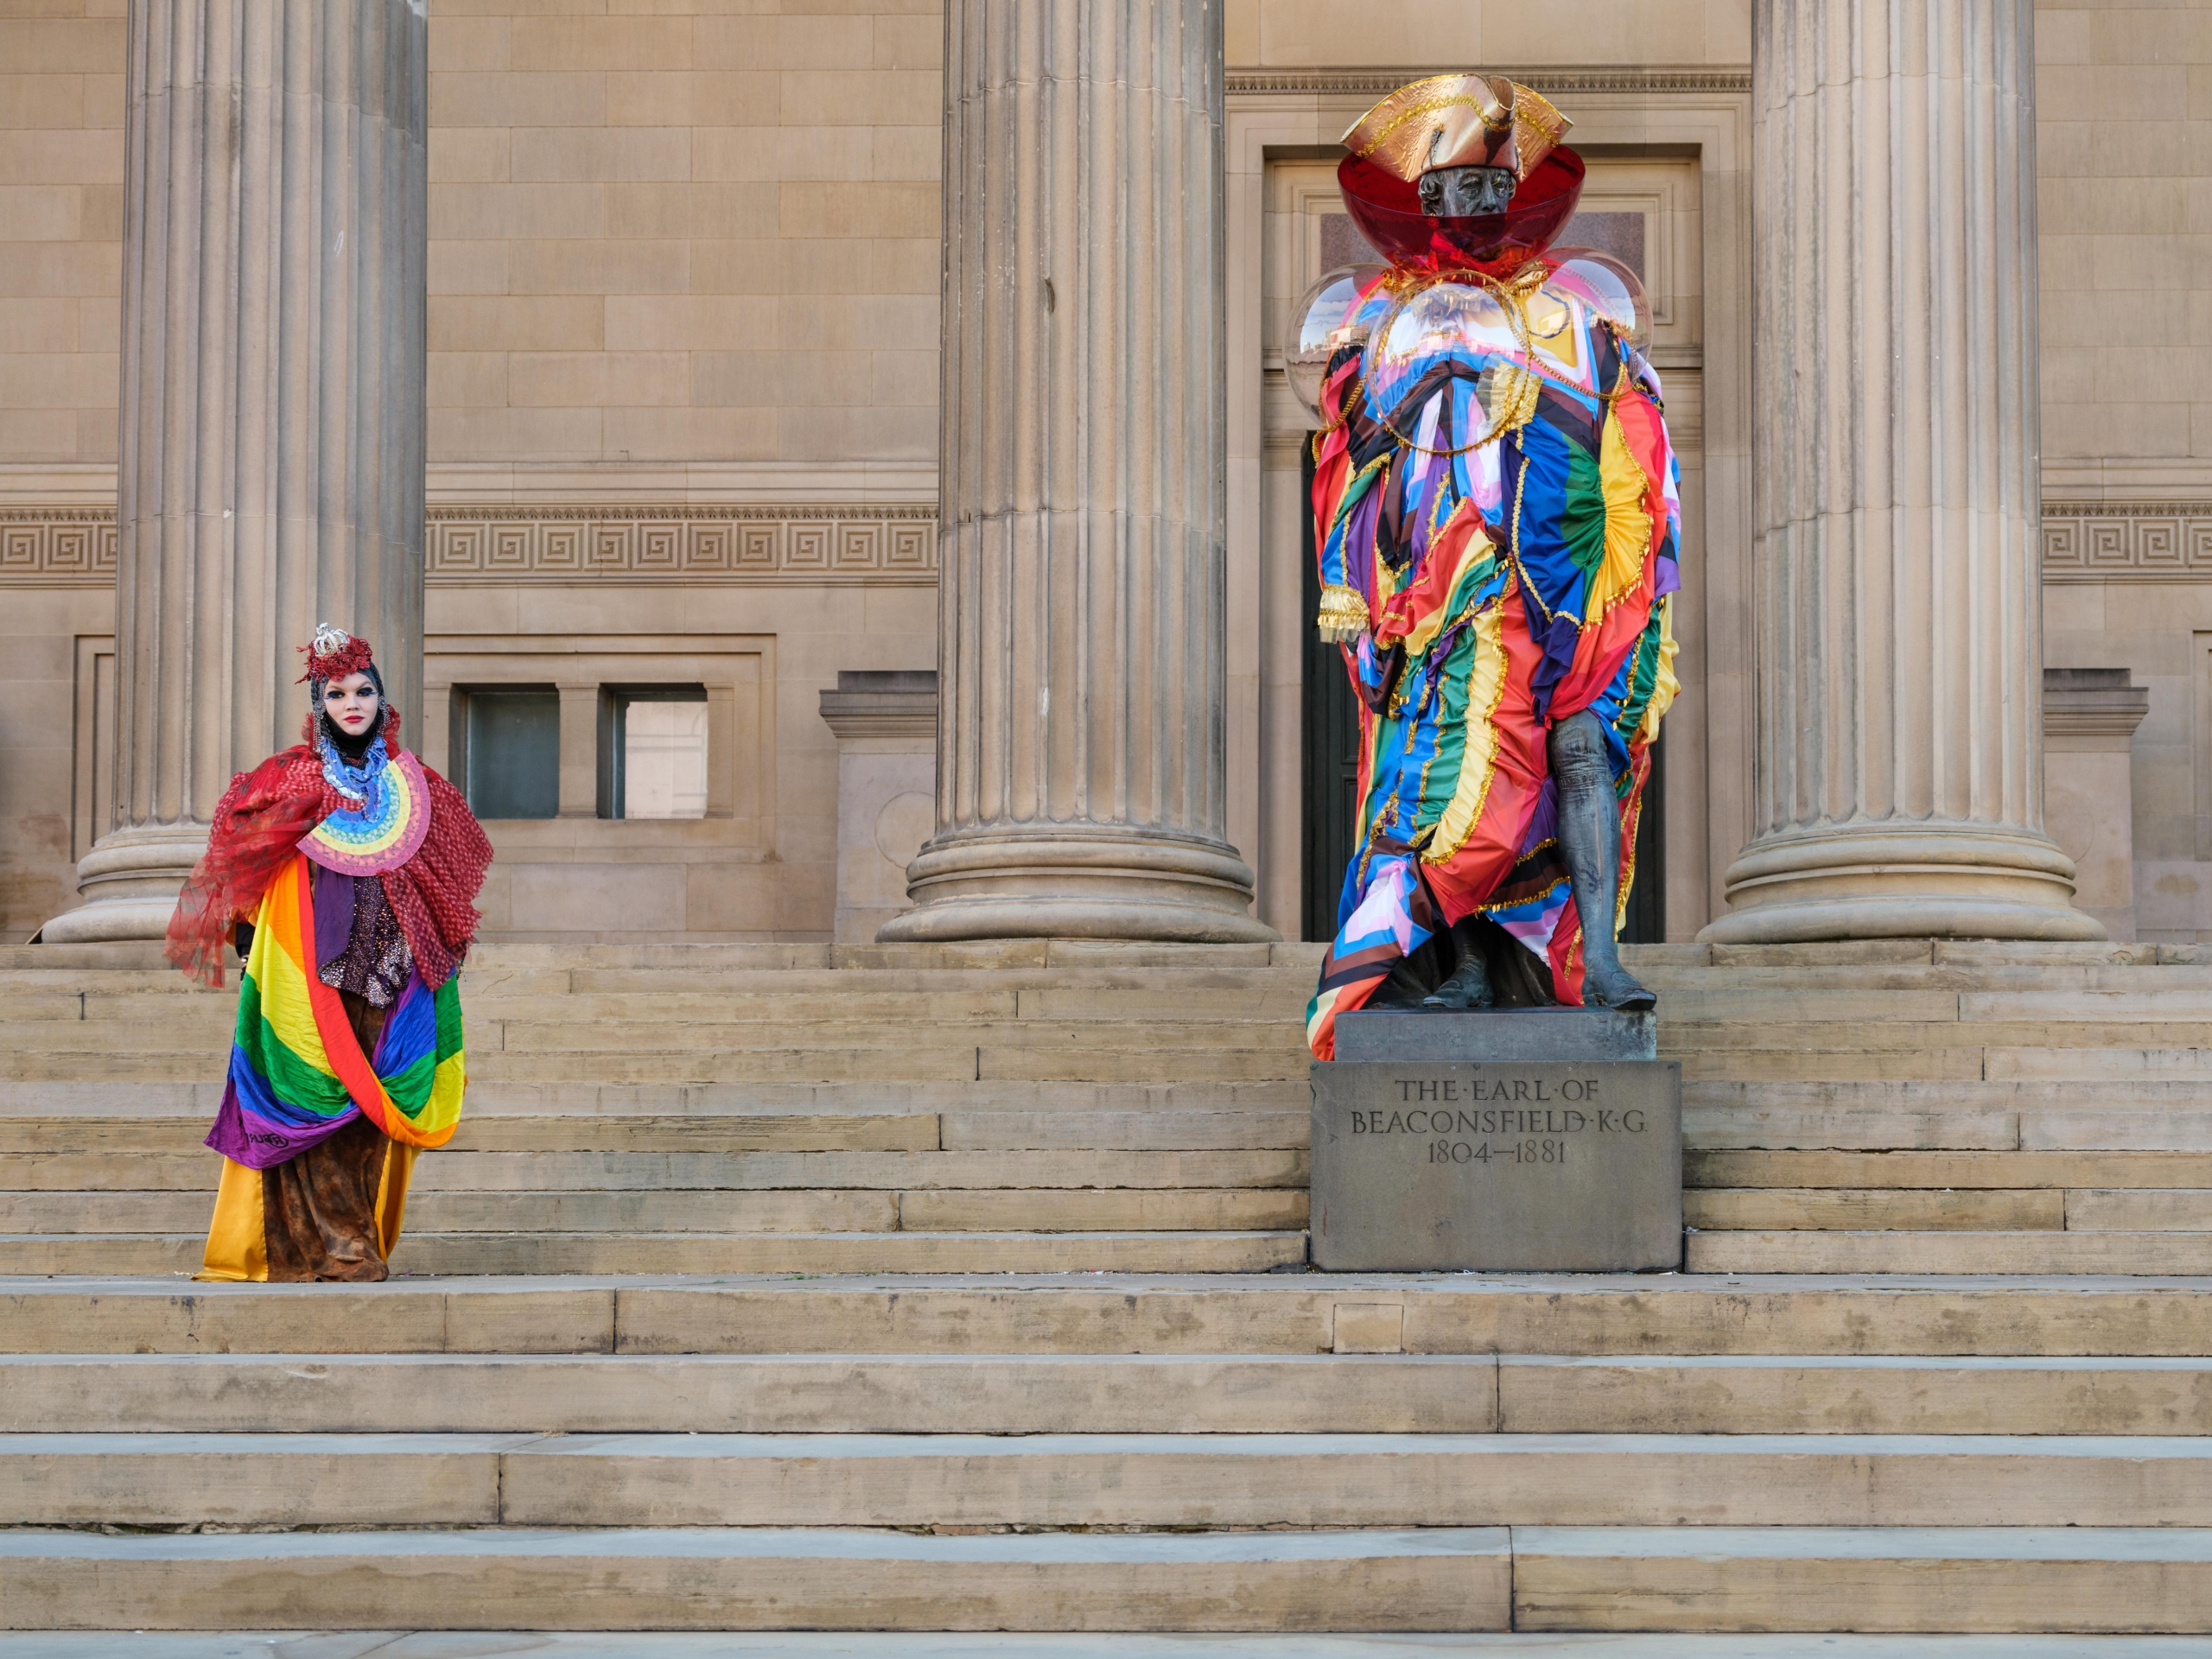 statue outside St georges hall dressed in bright colours